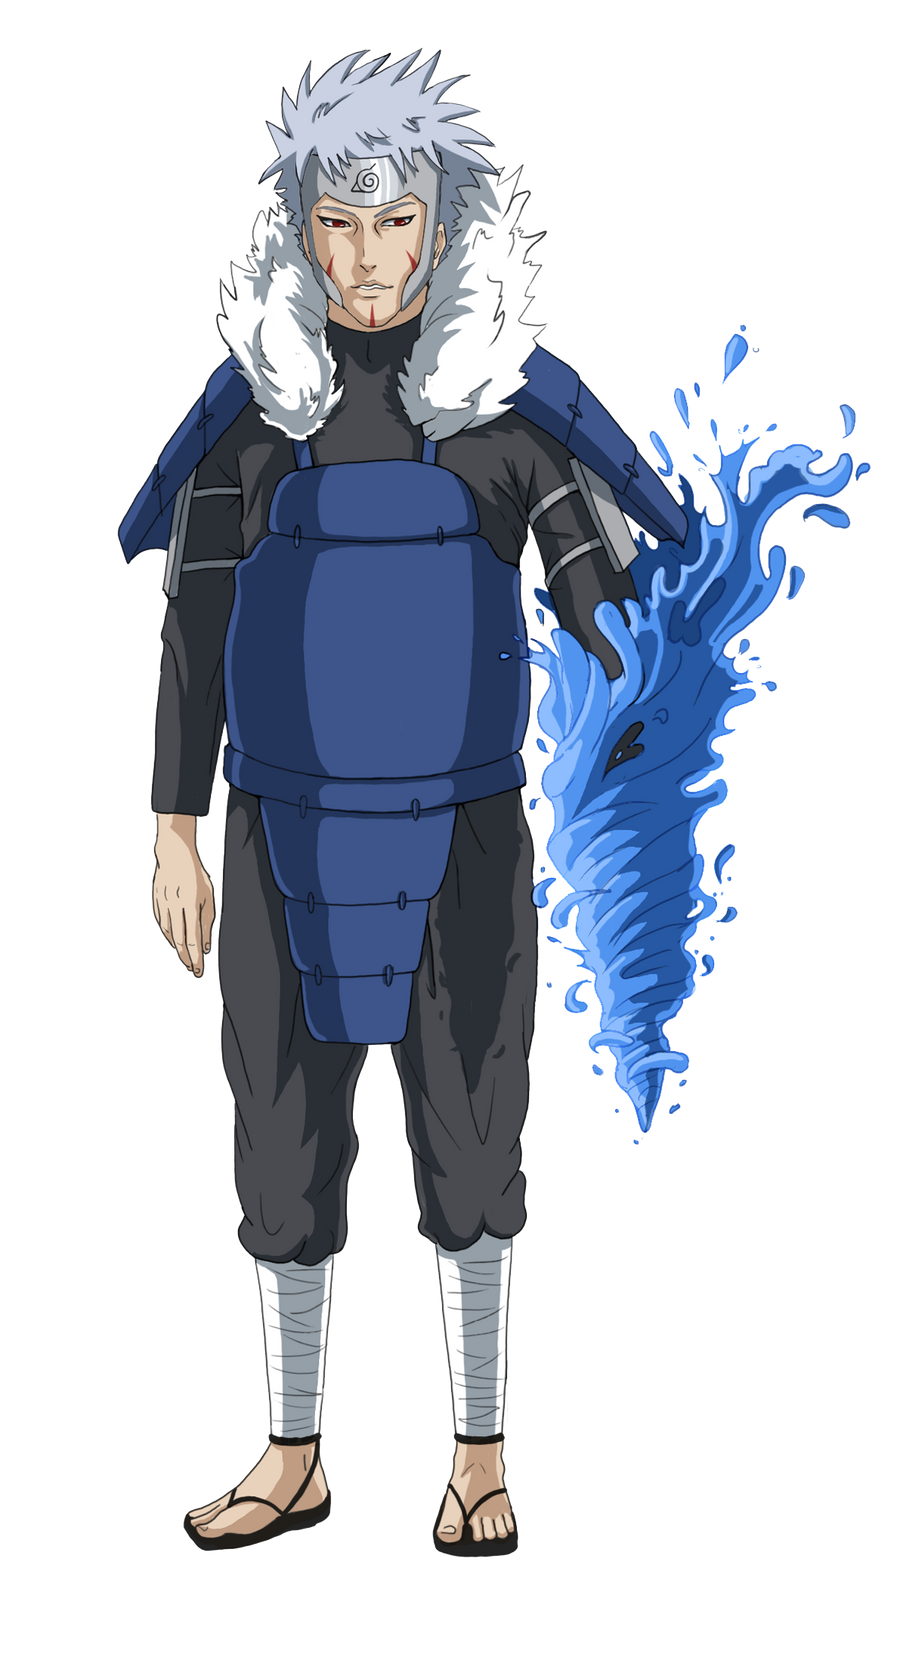 The Second Booke Of The Kings Commonly Called The Fourth: 1000+ Images About Tobirama Senju On Pinterest